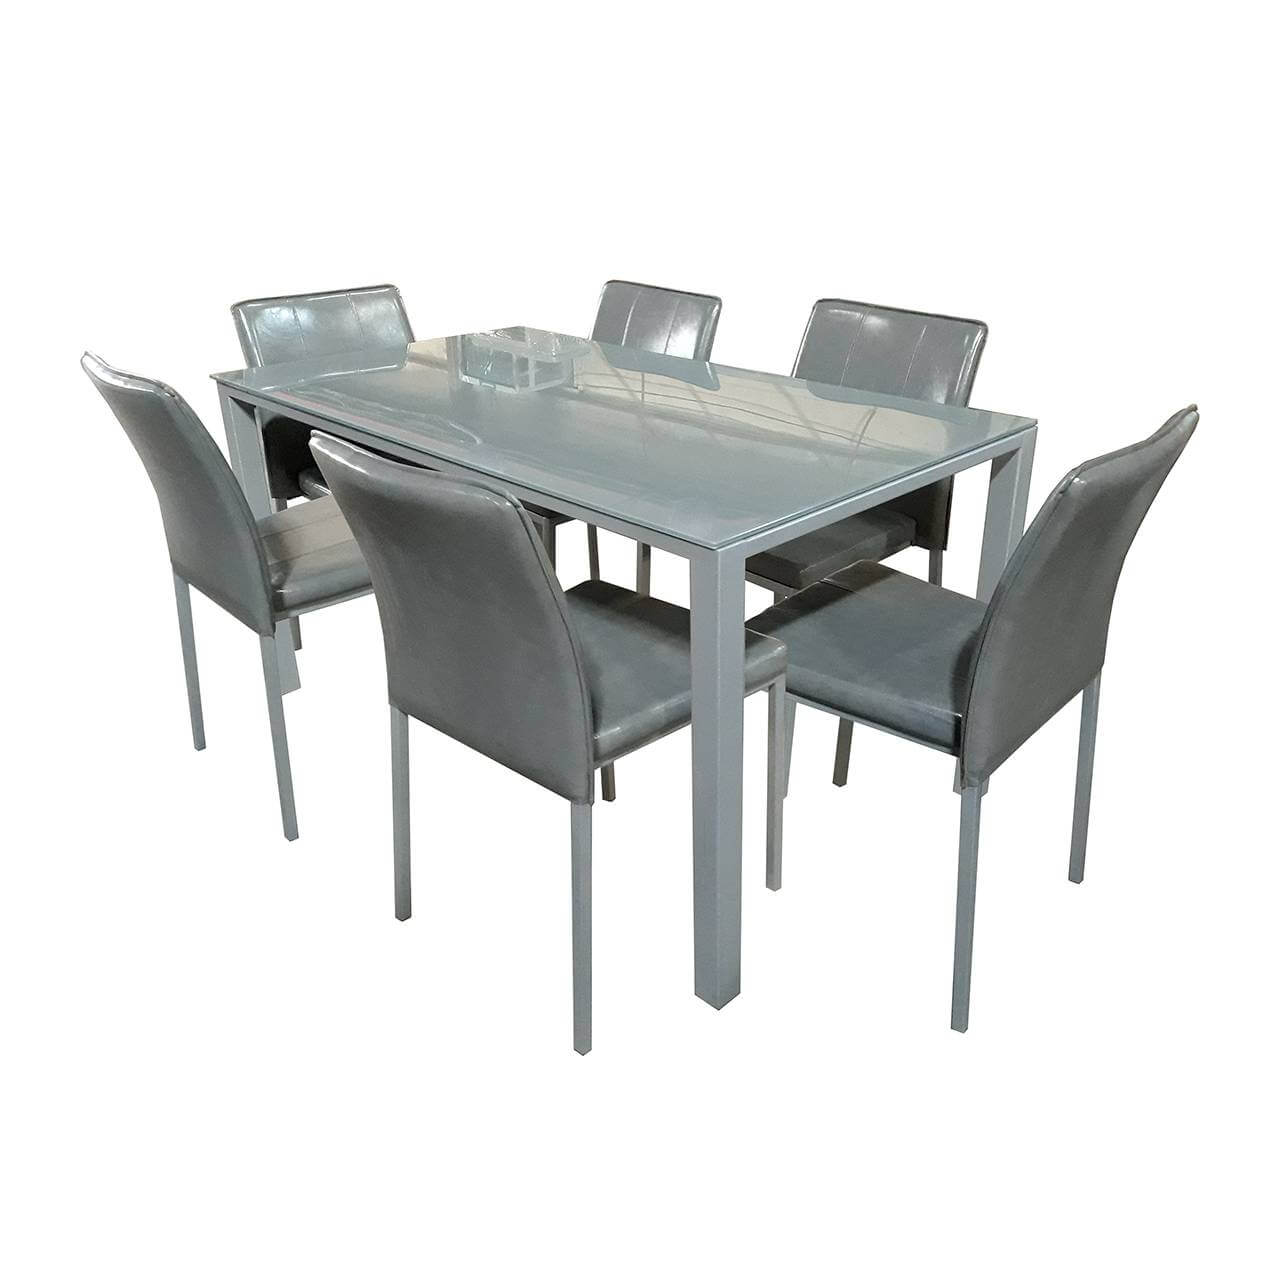 Dash Dining Set Furniture Store Manila Philippines Urban Concepts